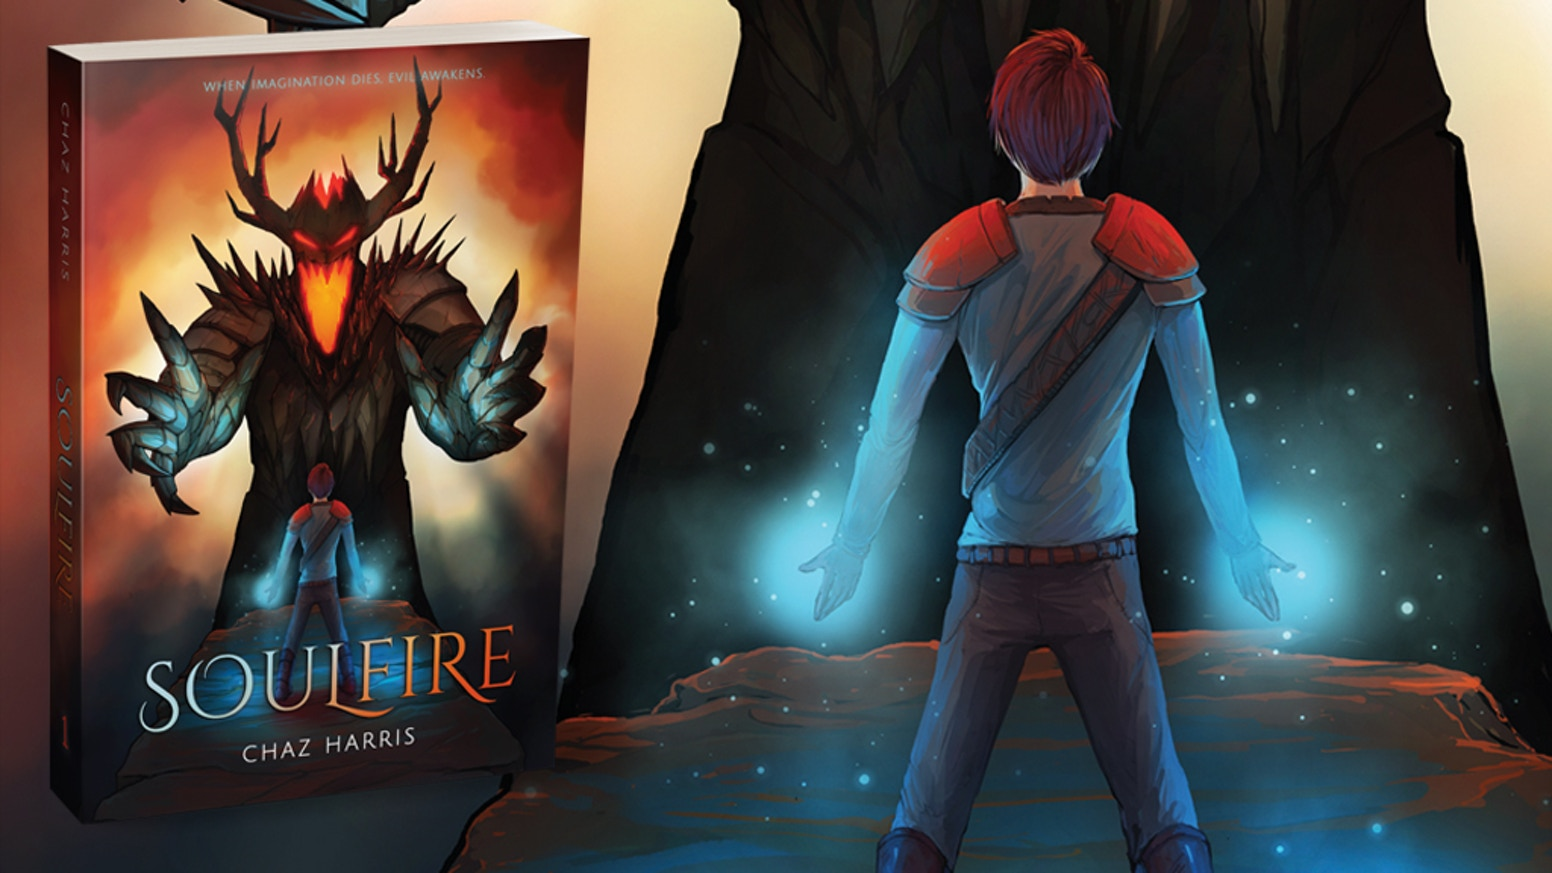 An LGBTQ Upper Middle Grade Fantasy Novel